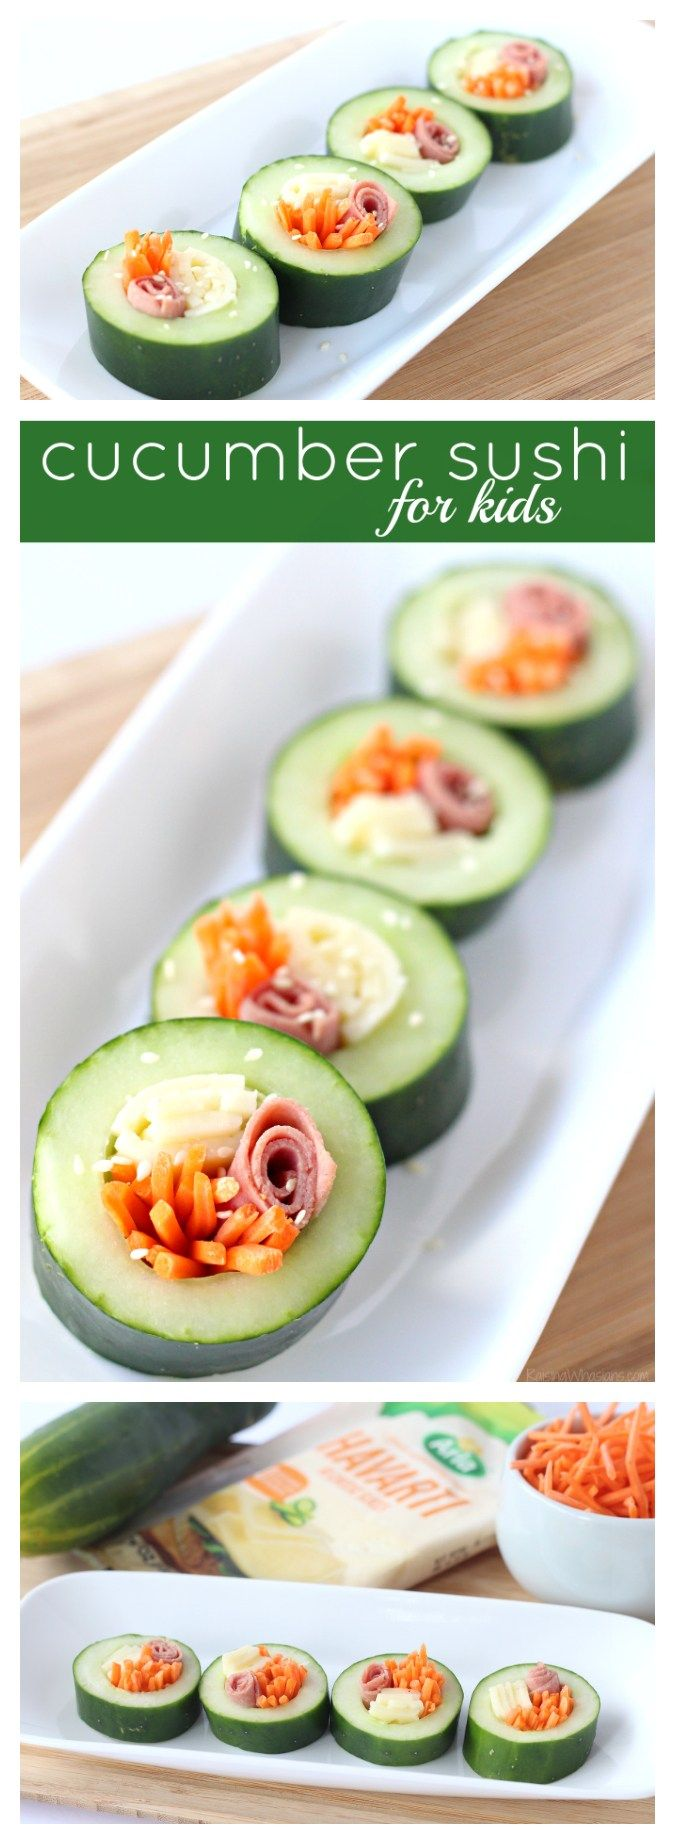 Easy Cucumber Sushi for Kids - Raising Whasians (AD)